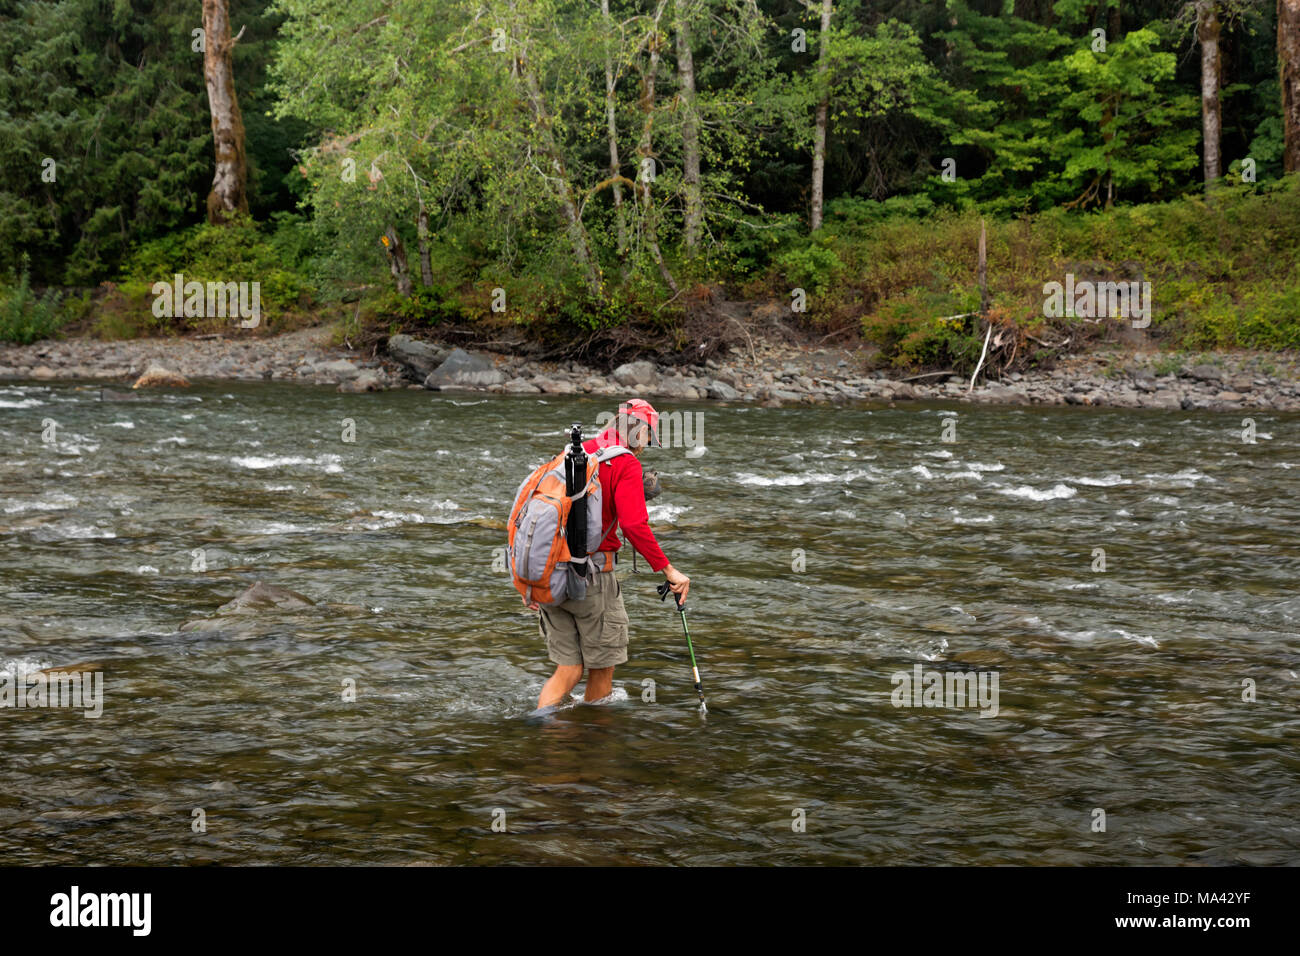 WA13949-00...WASHINGTON - Hiker fording the Queets River to access the Queets River Trail in Olympic National Park. - Stock Image